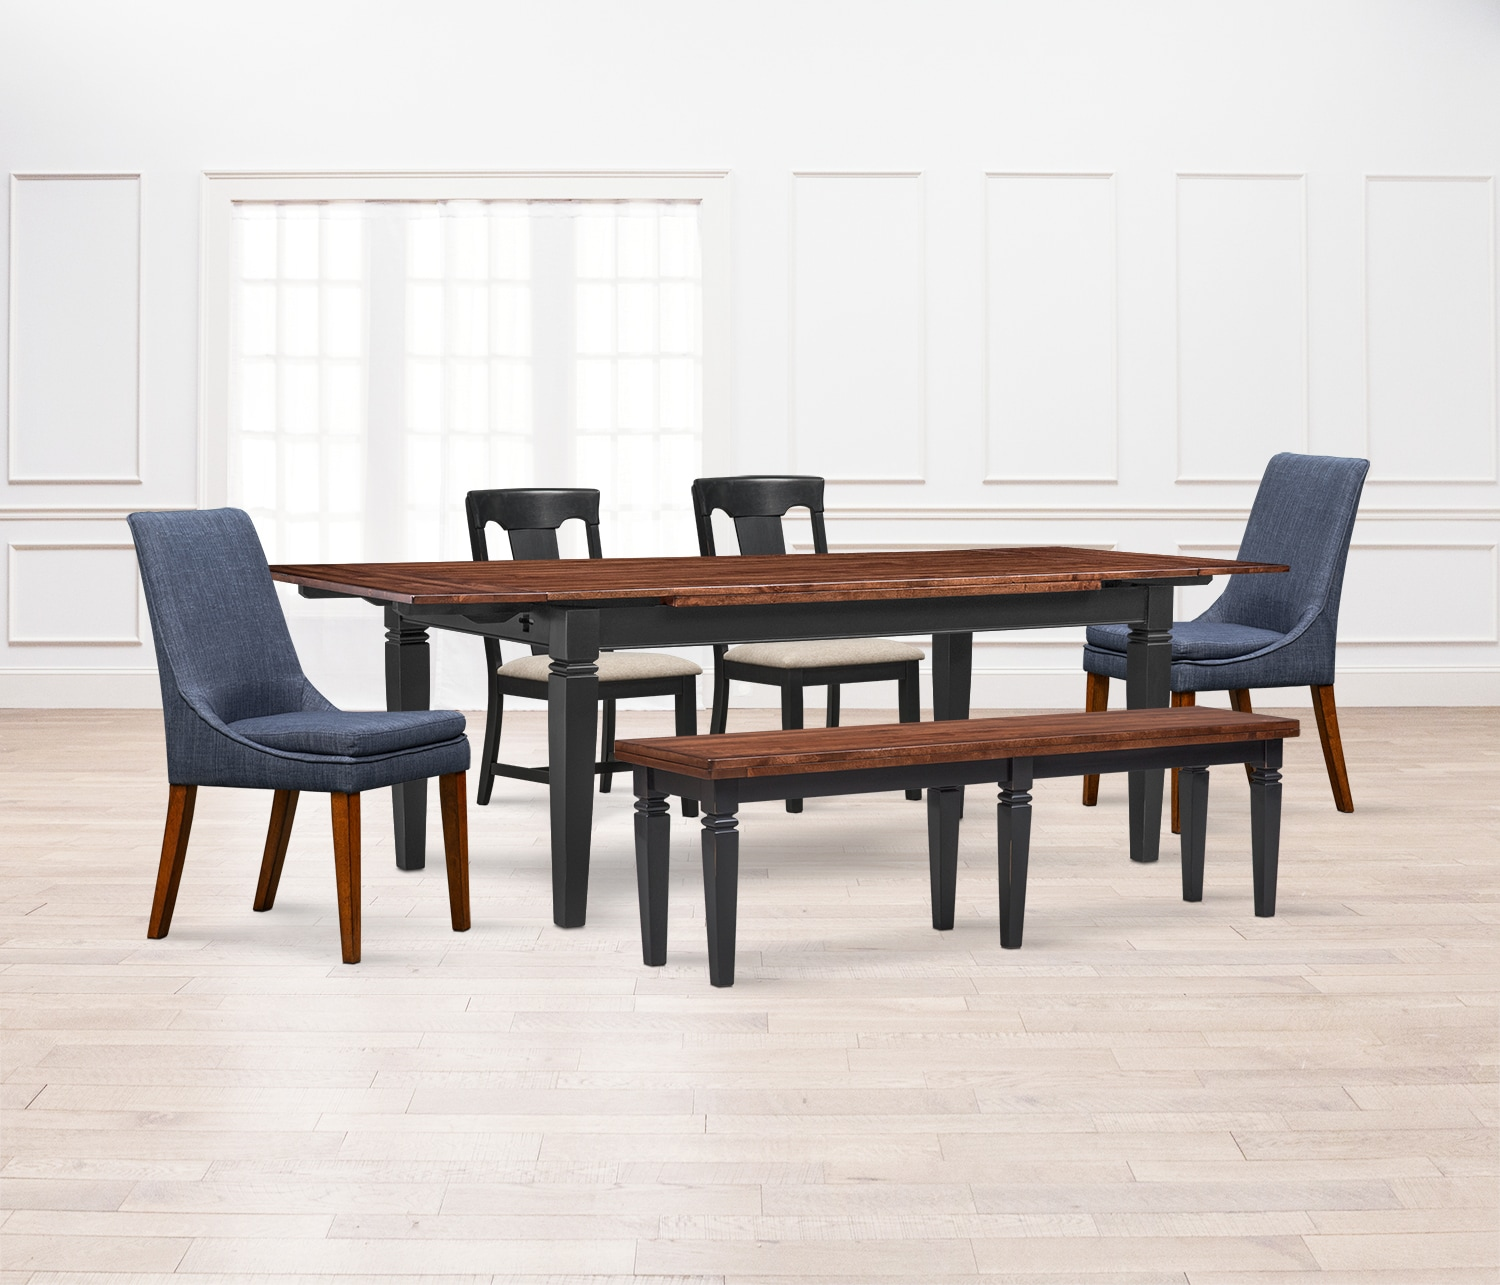 Adler Dining Table, 2 Side Chairs, 2 Upholstered Side Chairs And FREE Bench